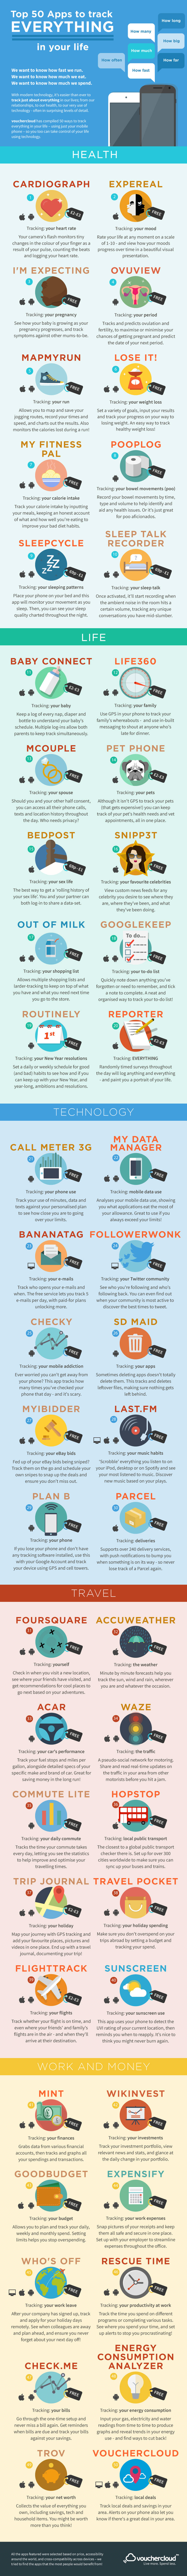 50 Apps For Tracking Everything [Infographic]